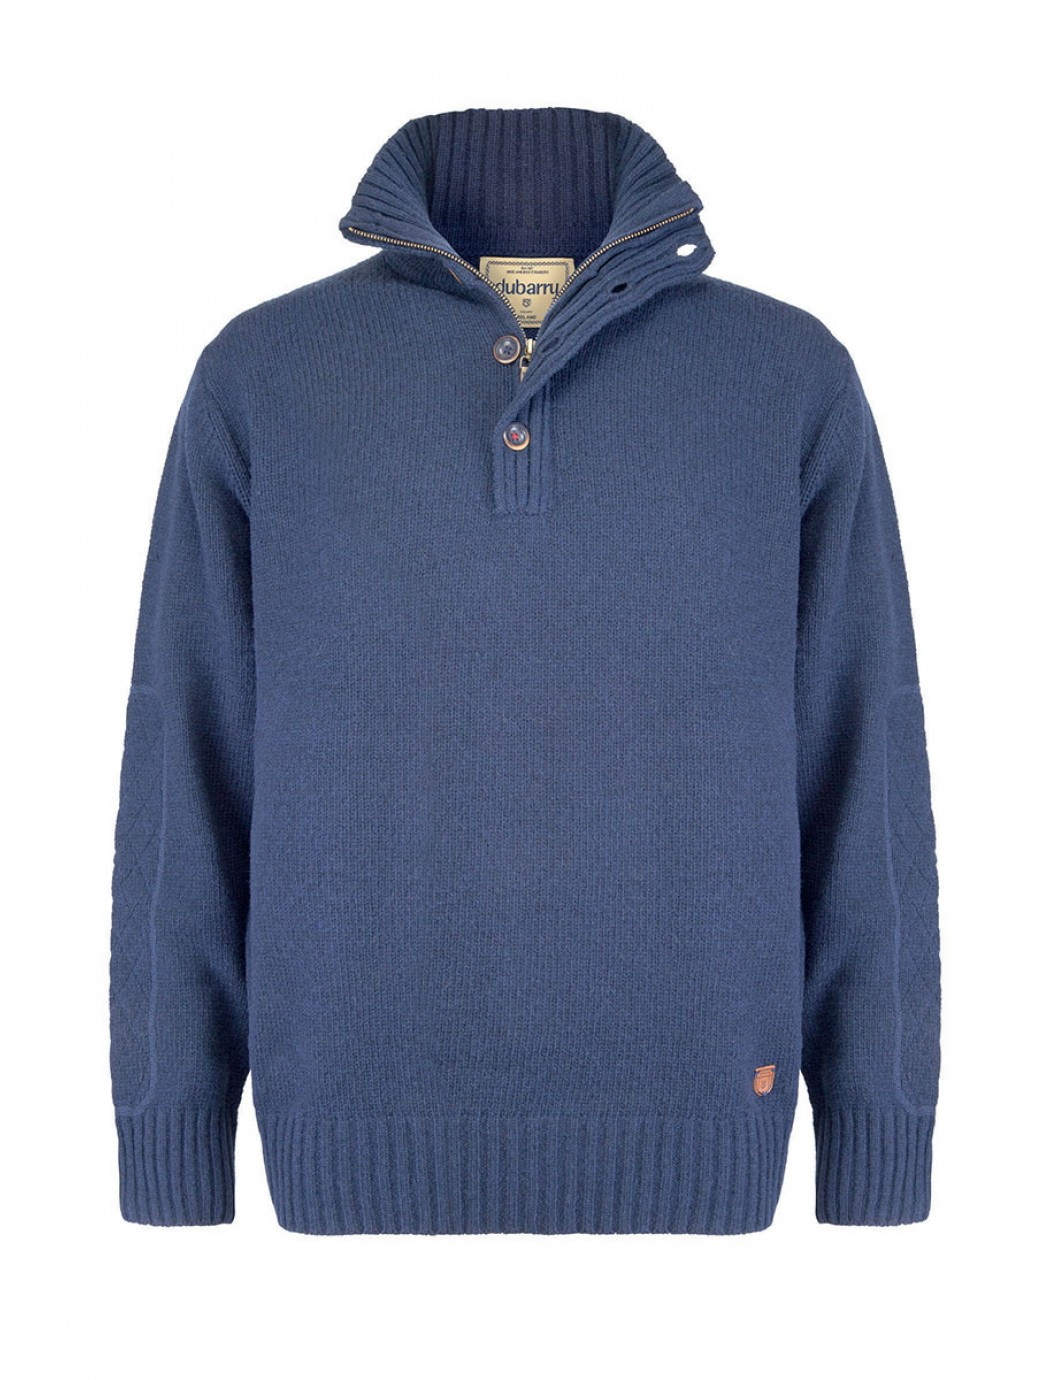 shakelton-mens-knits-cottons-navy